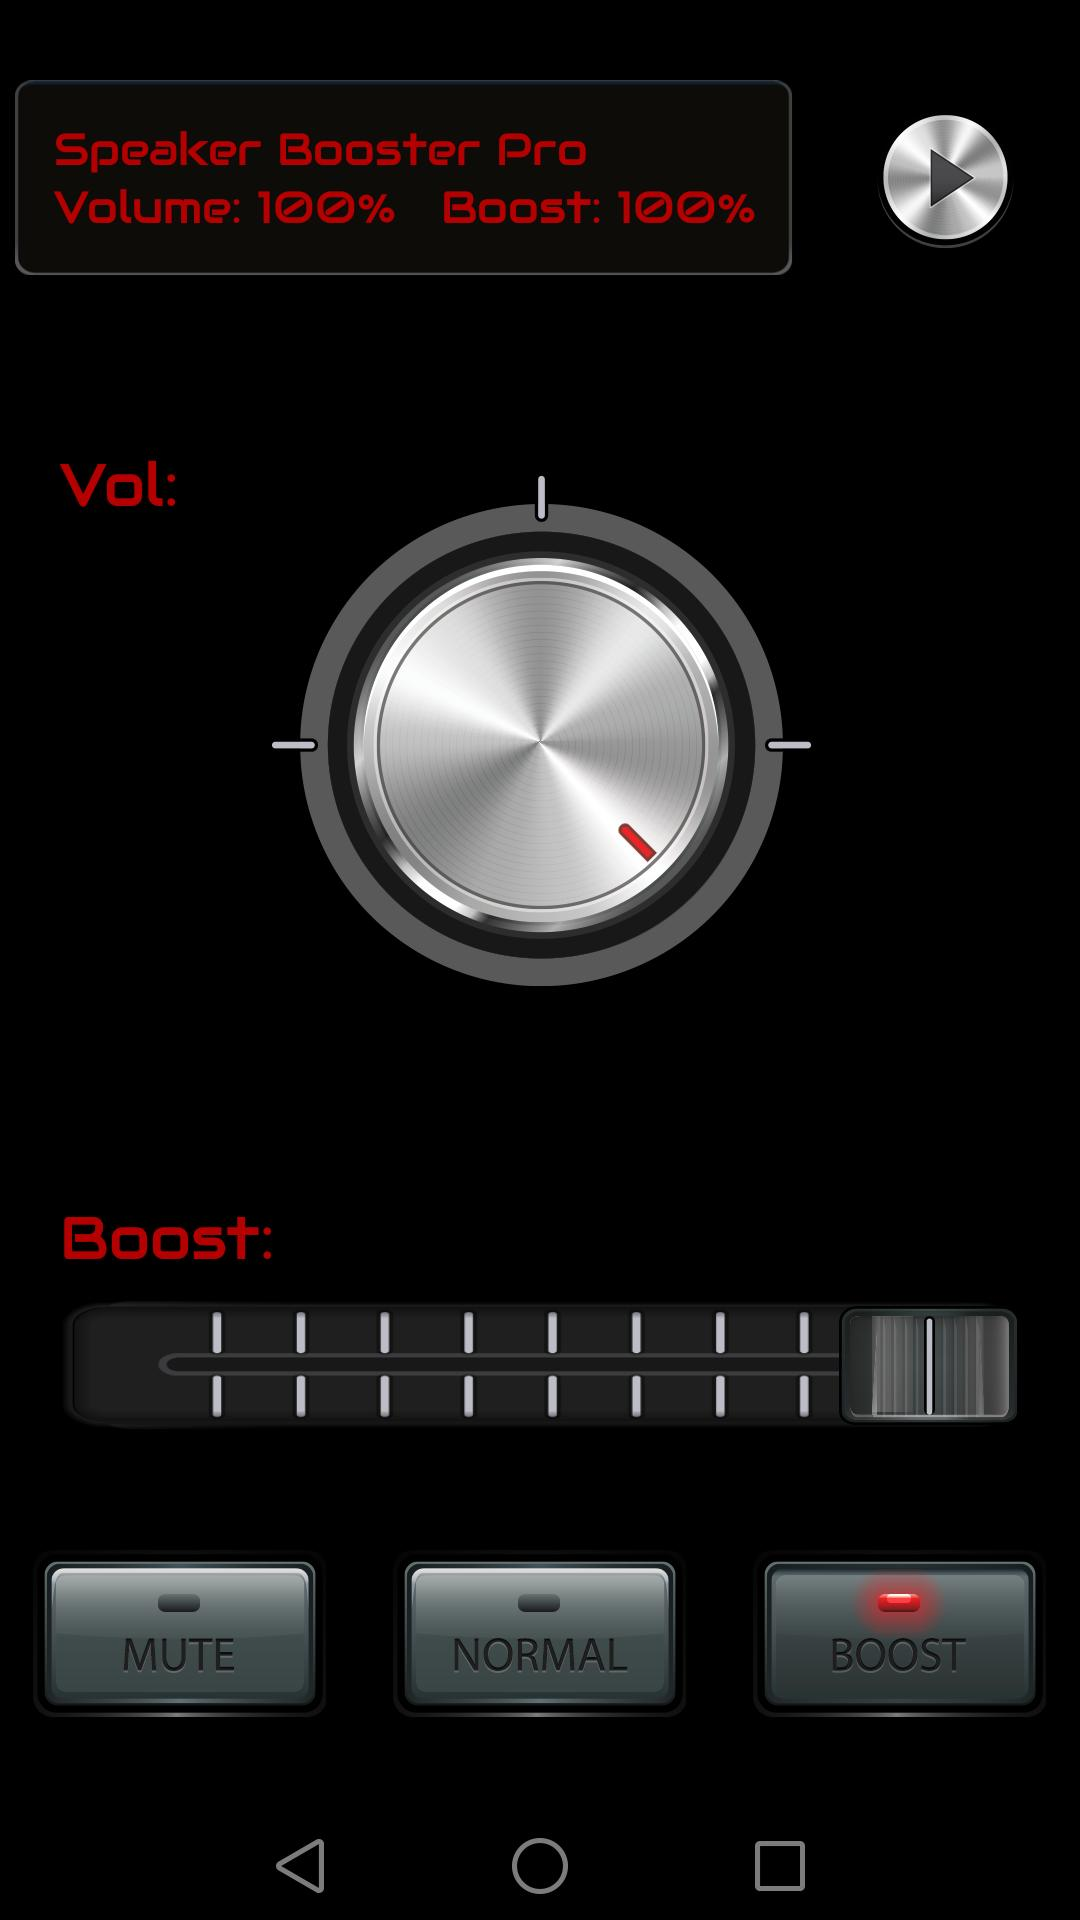 Speaker Booster Pro for Android - APK Download